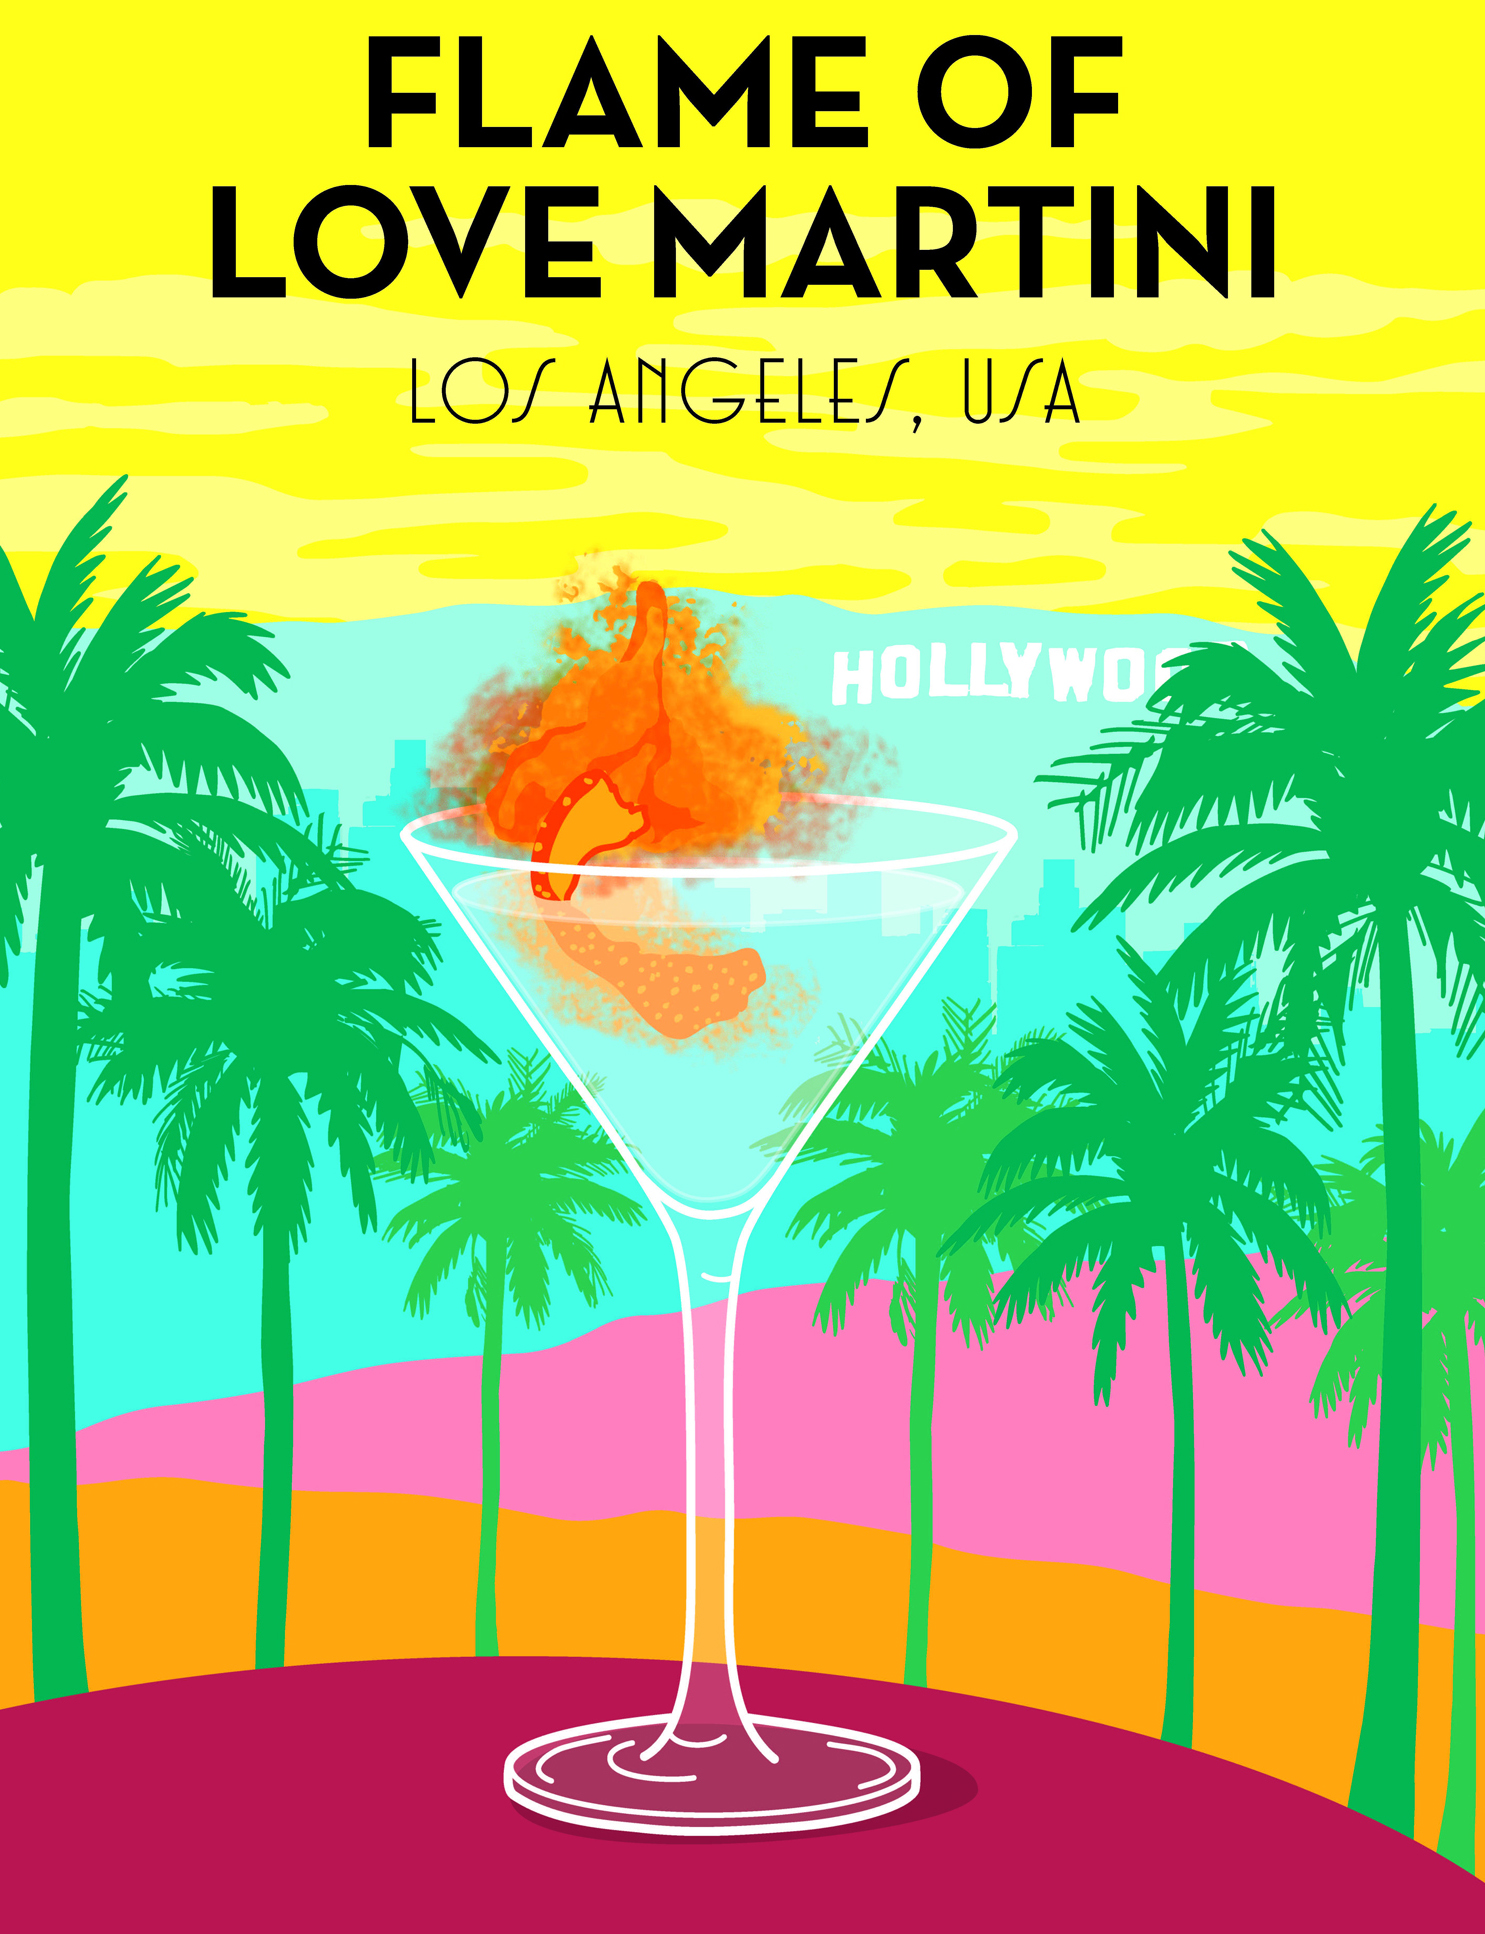 Flame of Love Martini (Alice Oehr/PA)